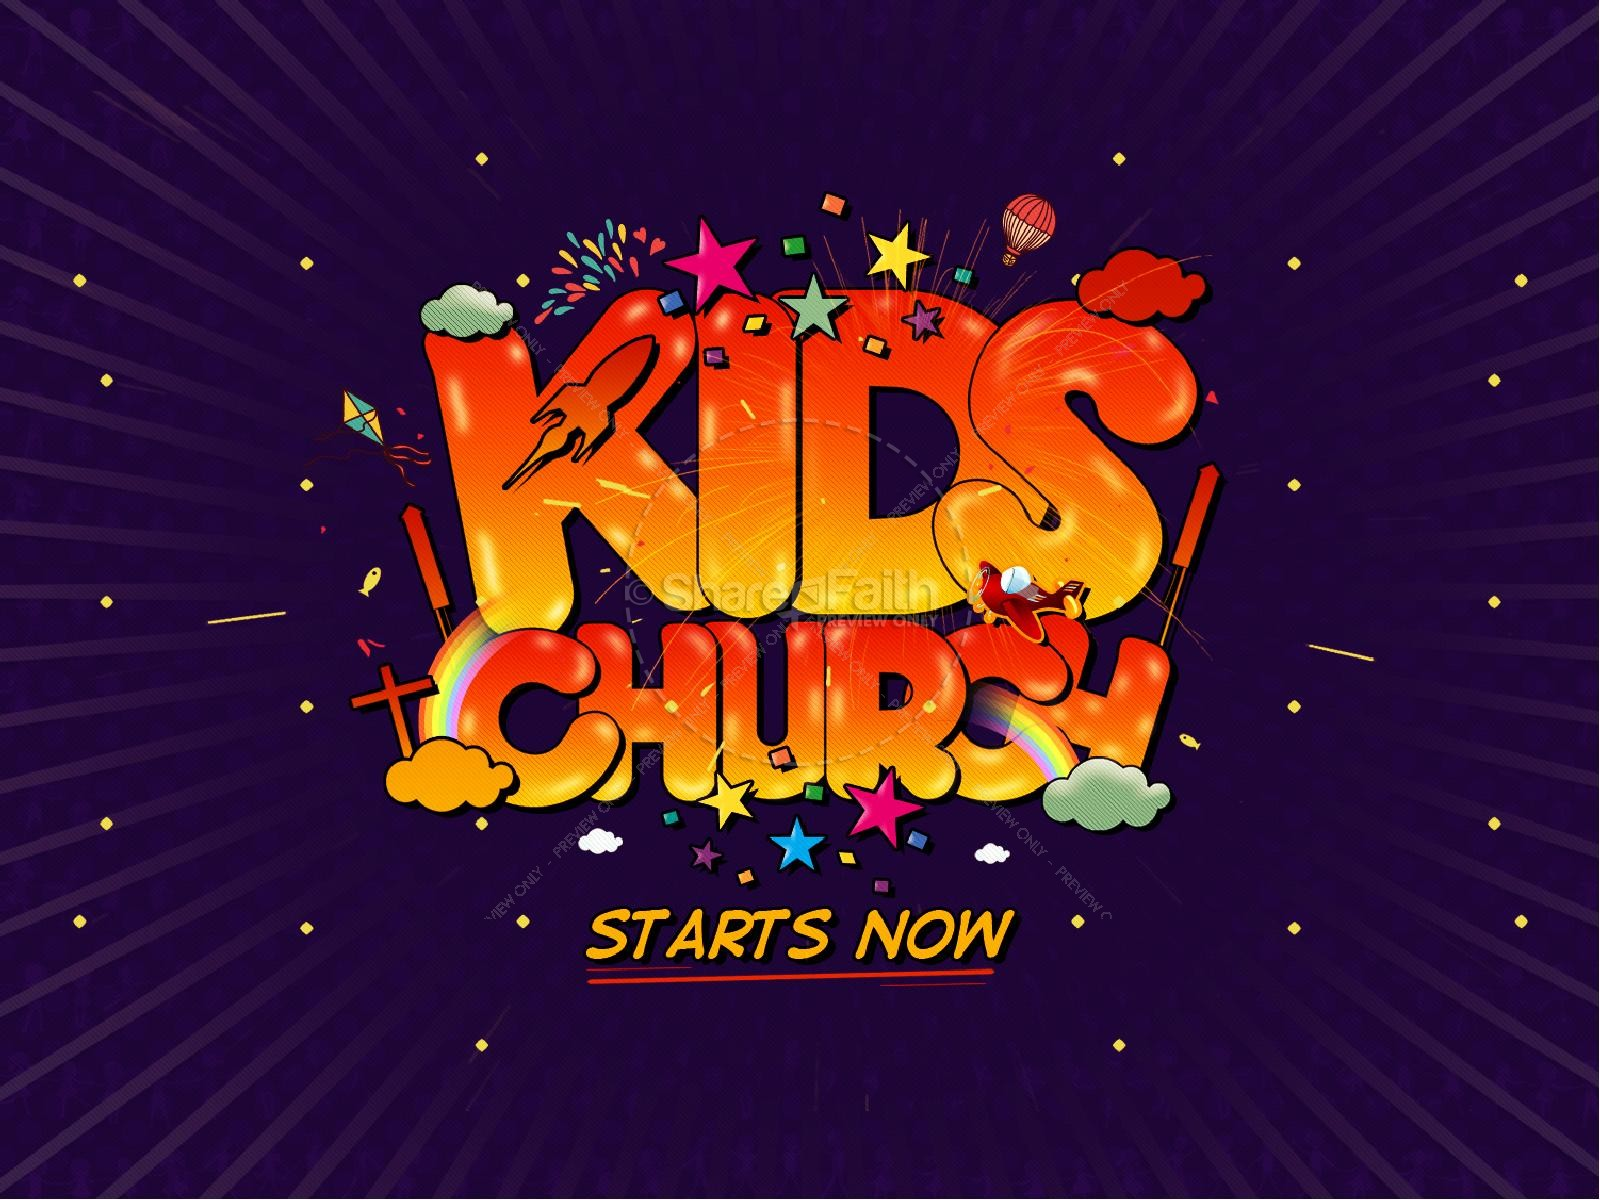 Kids Church Starts Now Ministry PowerPoint